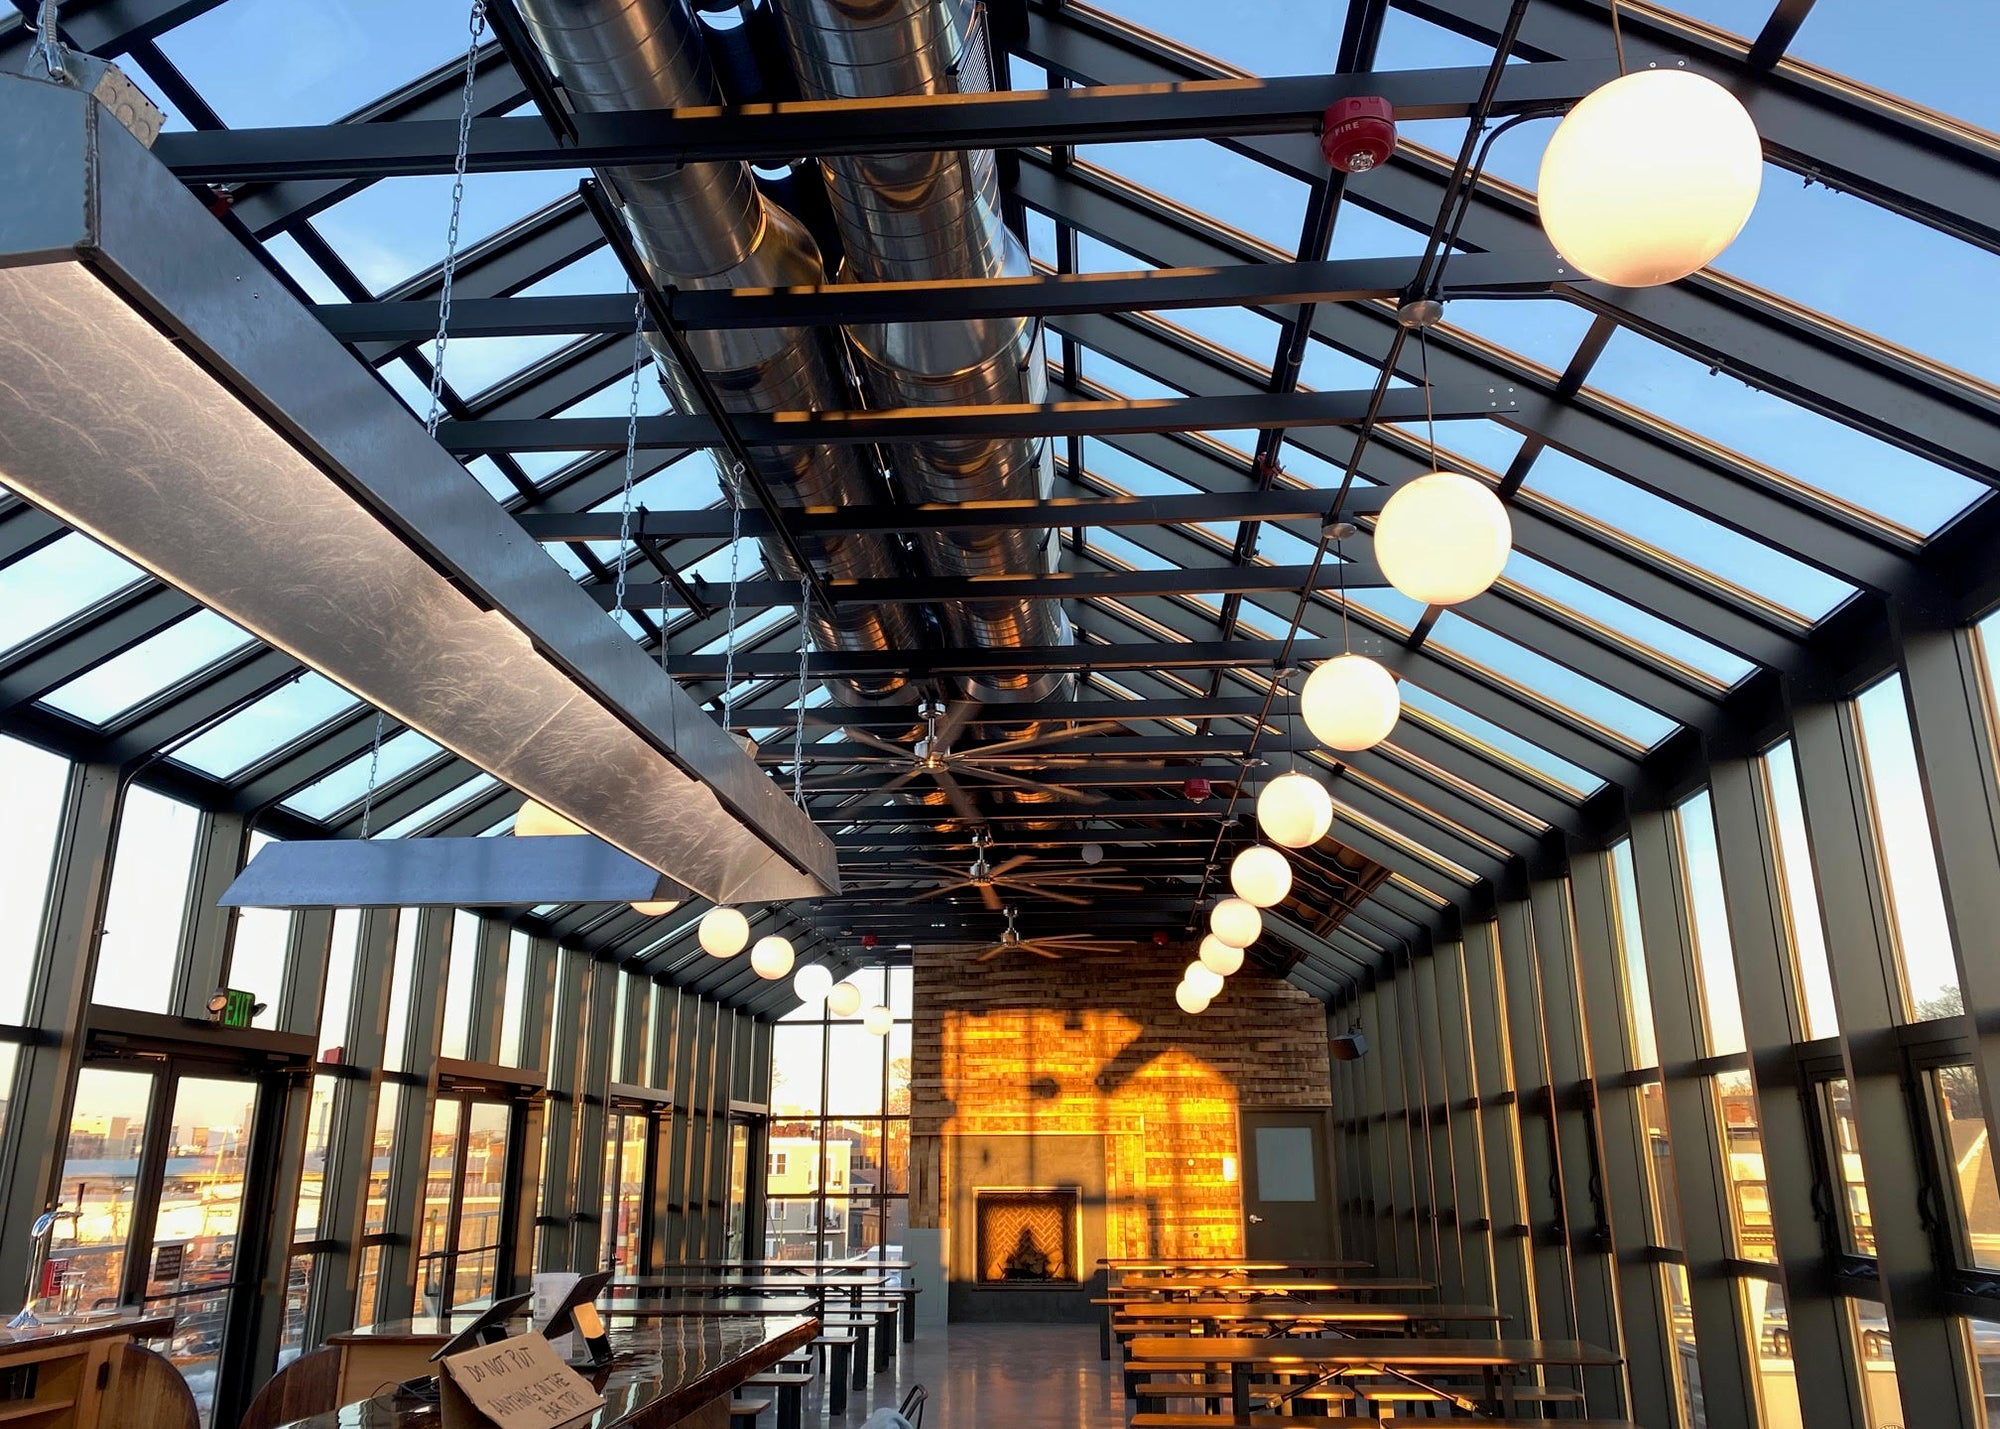 The rooftop beer hall at Dorchester Brewing Co.